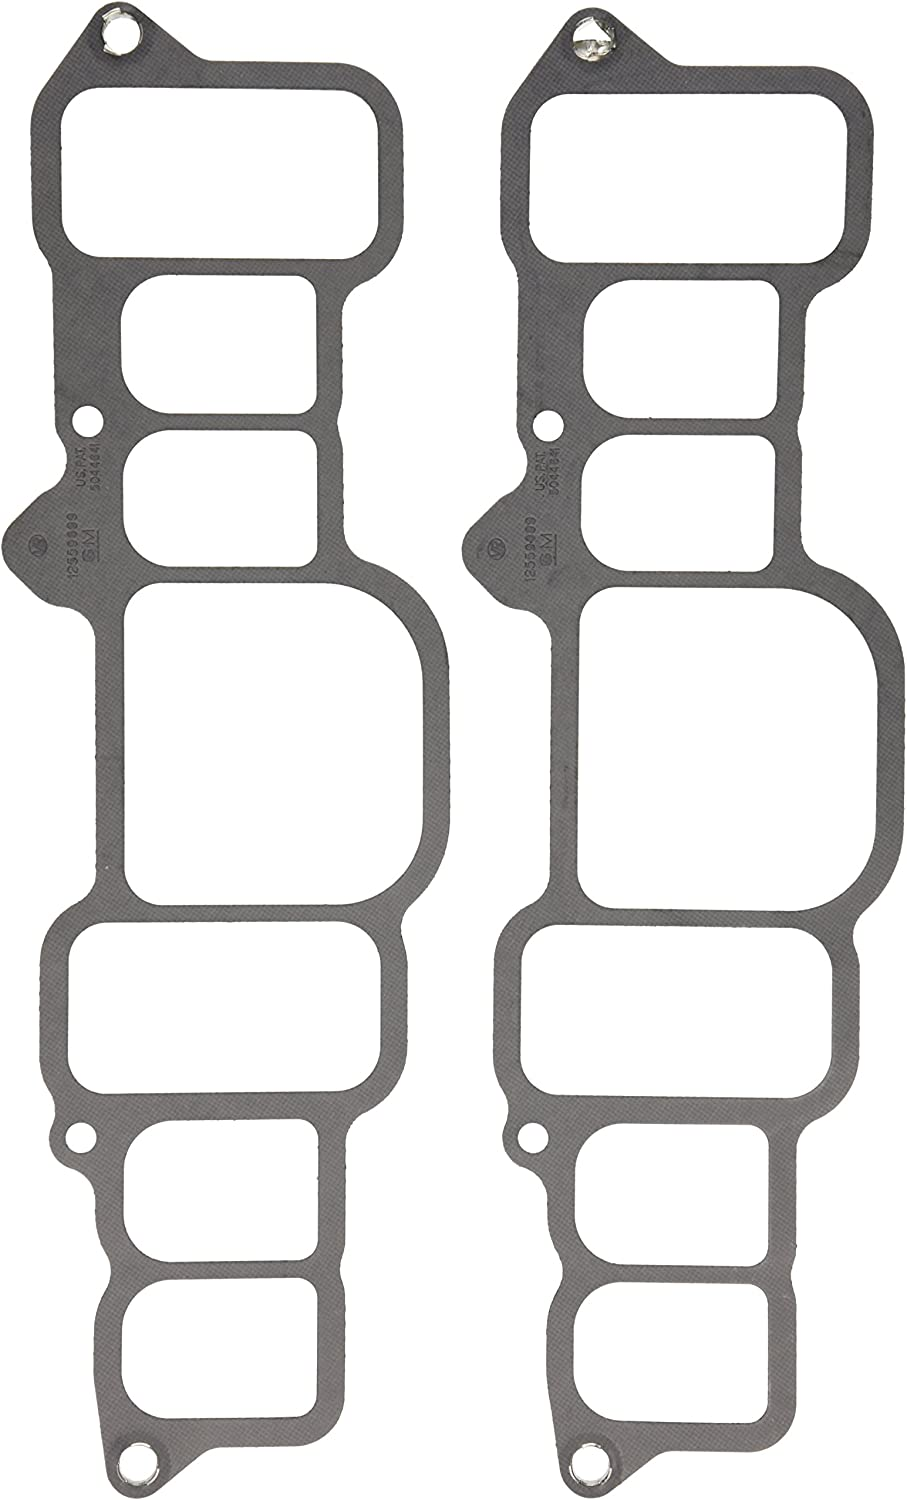 GM Genuine Super sale Parts 12534215 Intake Manifold Side Directly managed store Gasket Kit with I